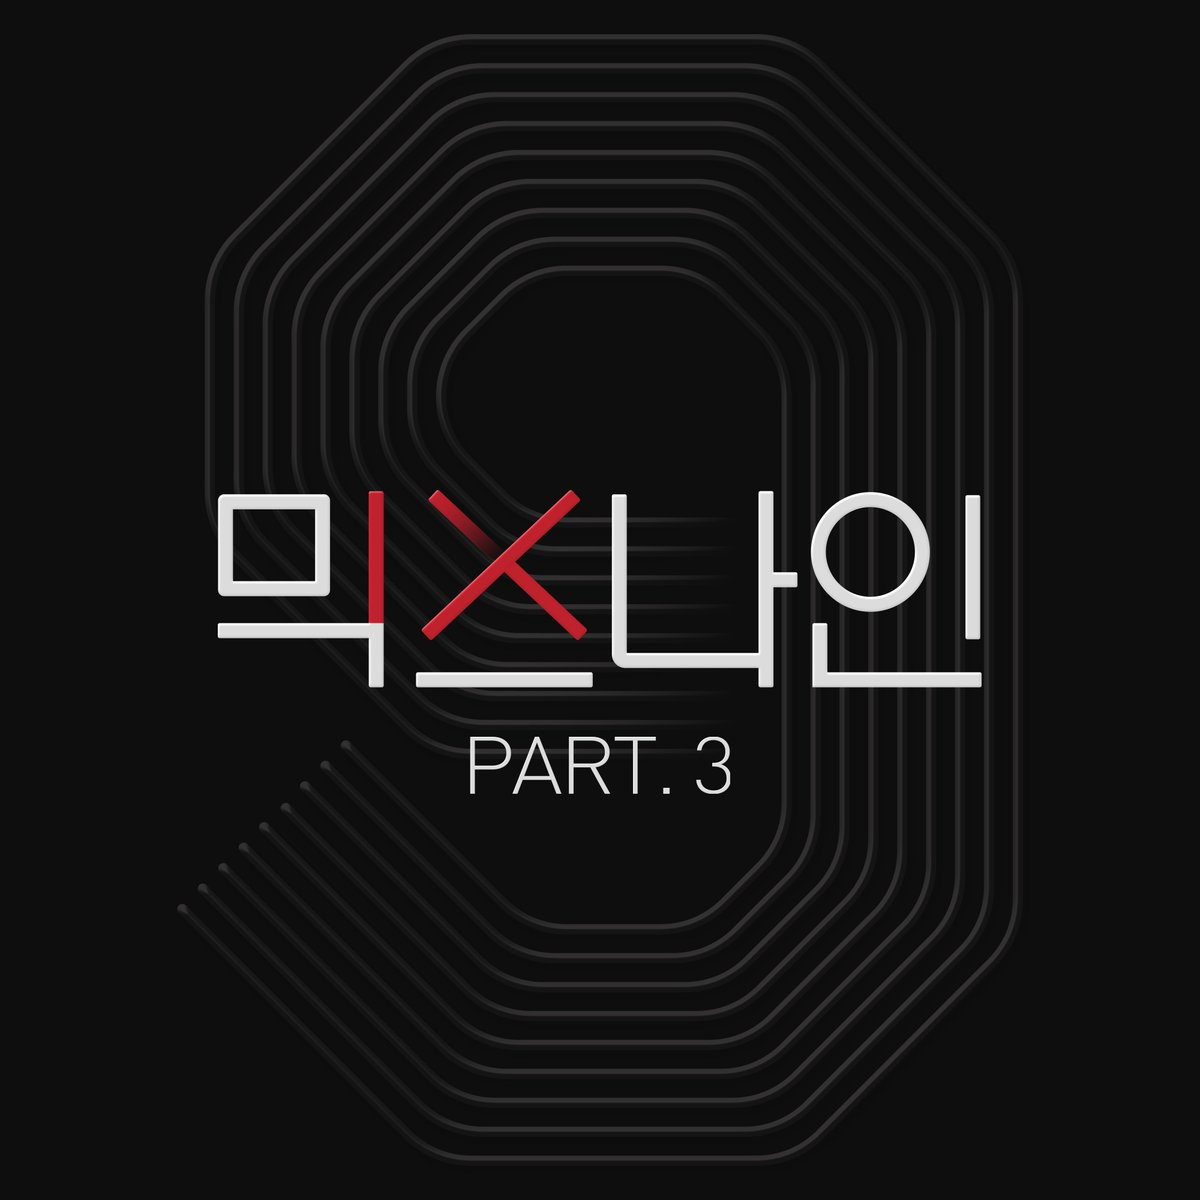 [MIXNINE - 'JUST DANCE'] Available on iTunes @ https://t.co/yDsQspKKyl #믹스나인 #MIXNINE #PART3 #JUSTDANCE #저스트댄스 #YG